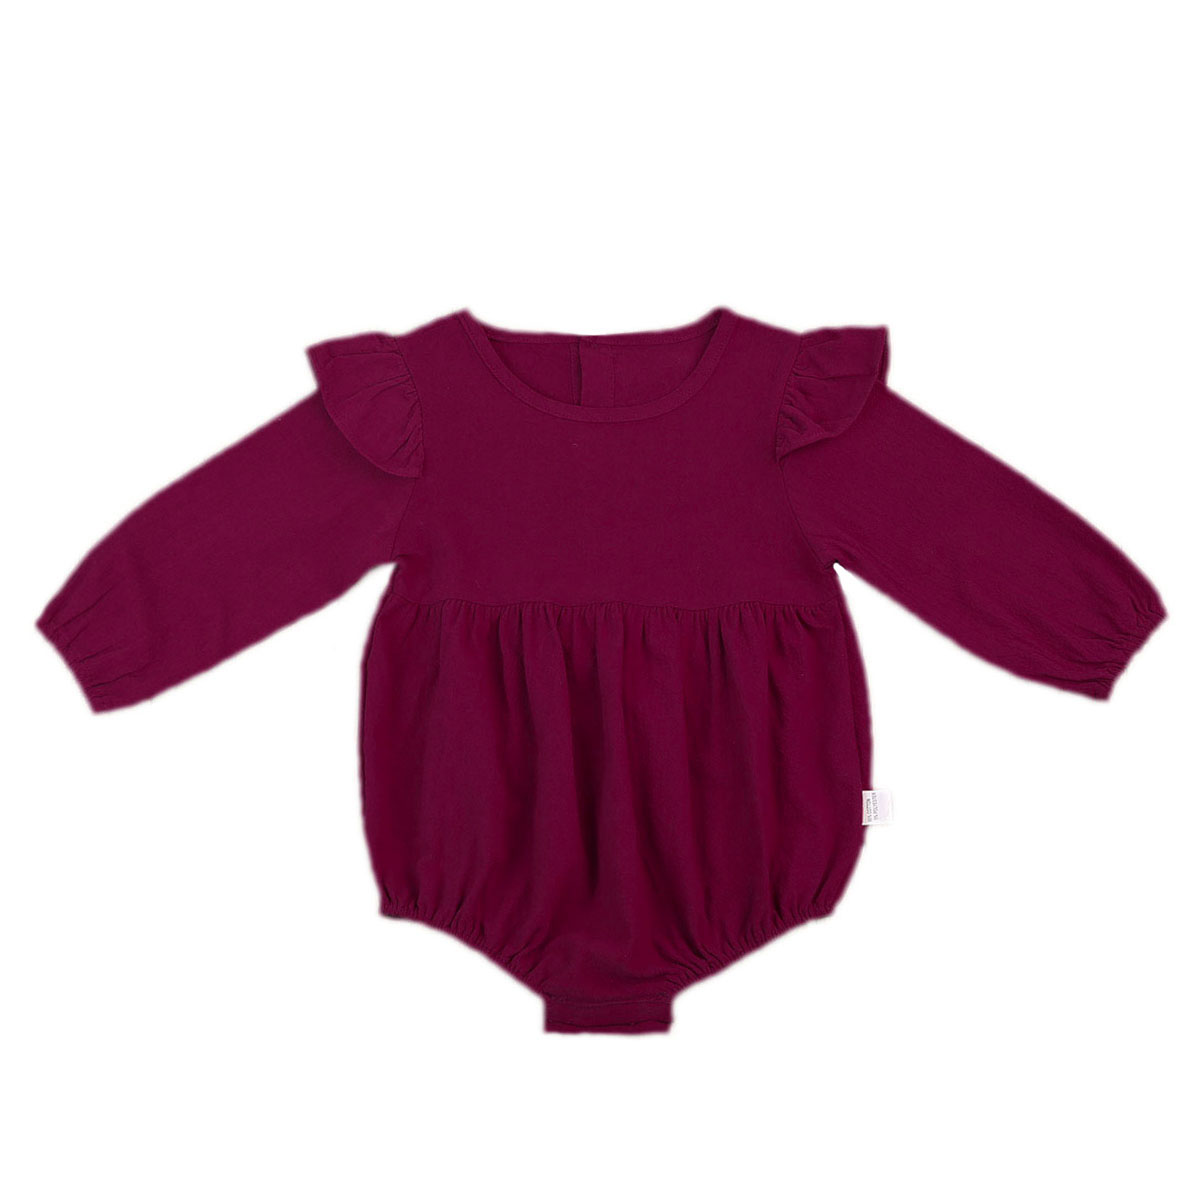 Ha7901a27b299499fb7e59fbaba2758b4w Pudcoco Solid Cotton Baby Autumn Rompers Vintage Baby Girl Romper Long Sleeve Baby Clothes 3m - 3Years